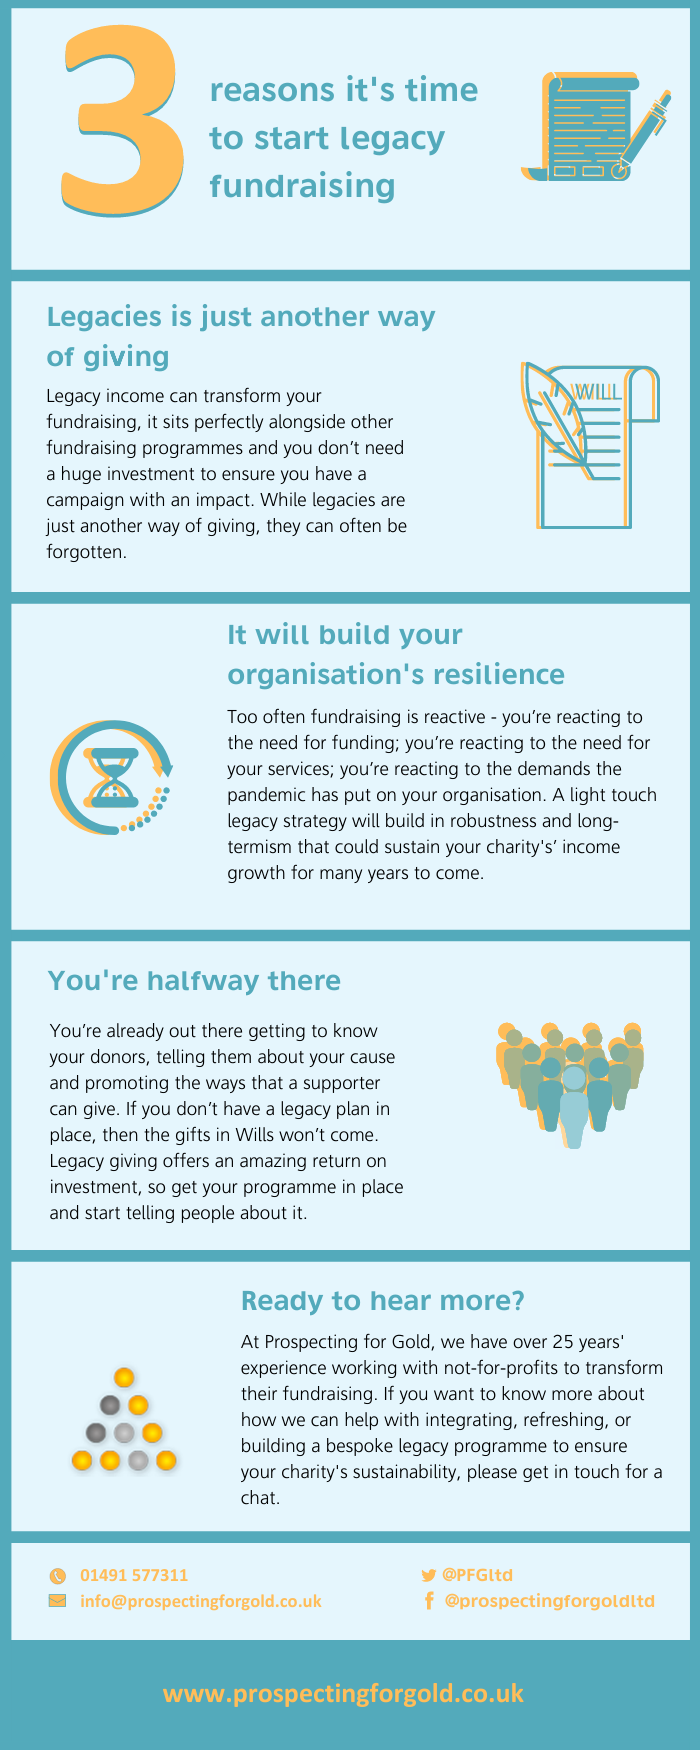 Time to start legacy fundraising - infographic